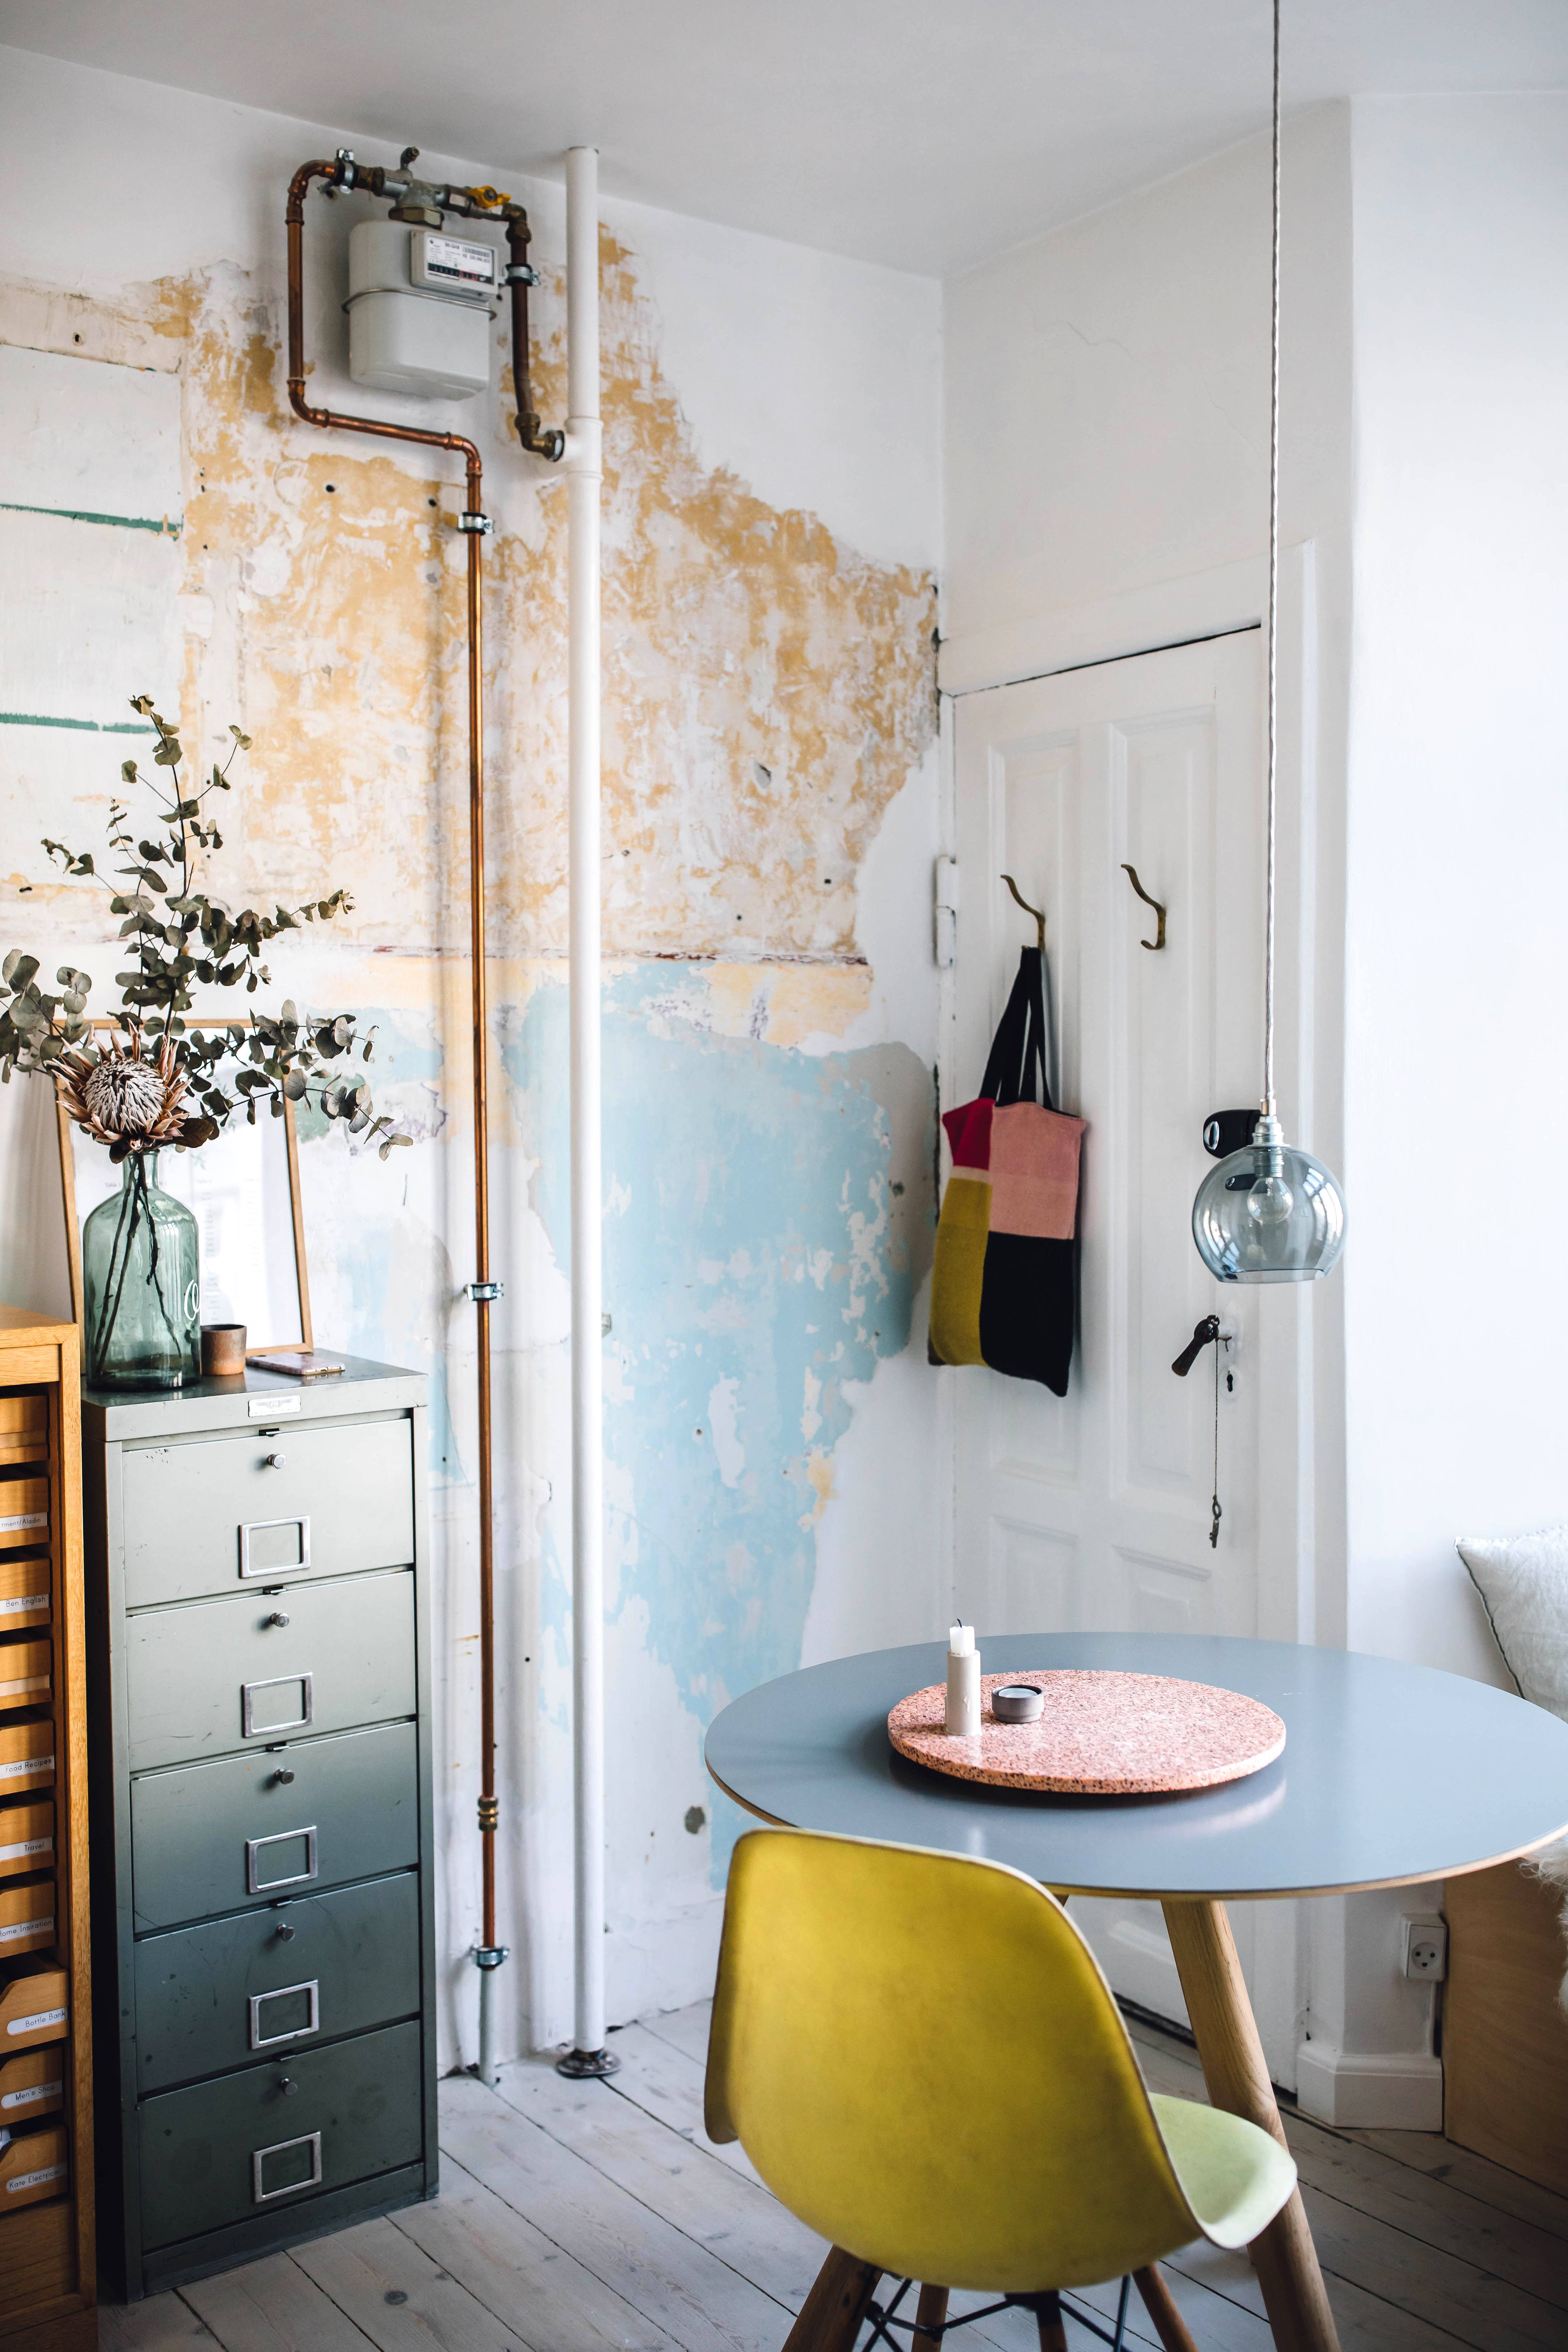 Home Tour with Kate Imogen Wood in Copenhagen